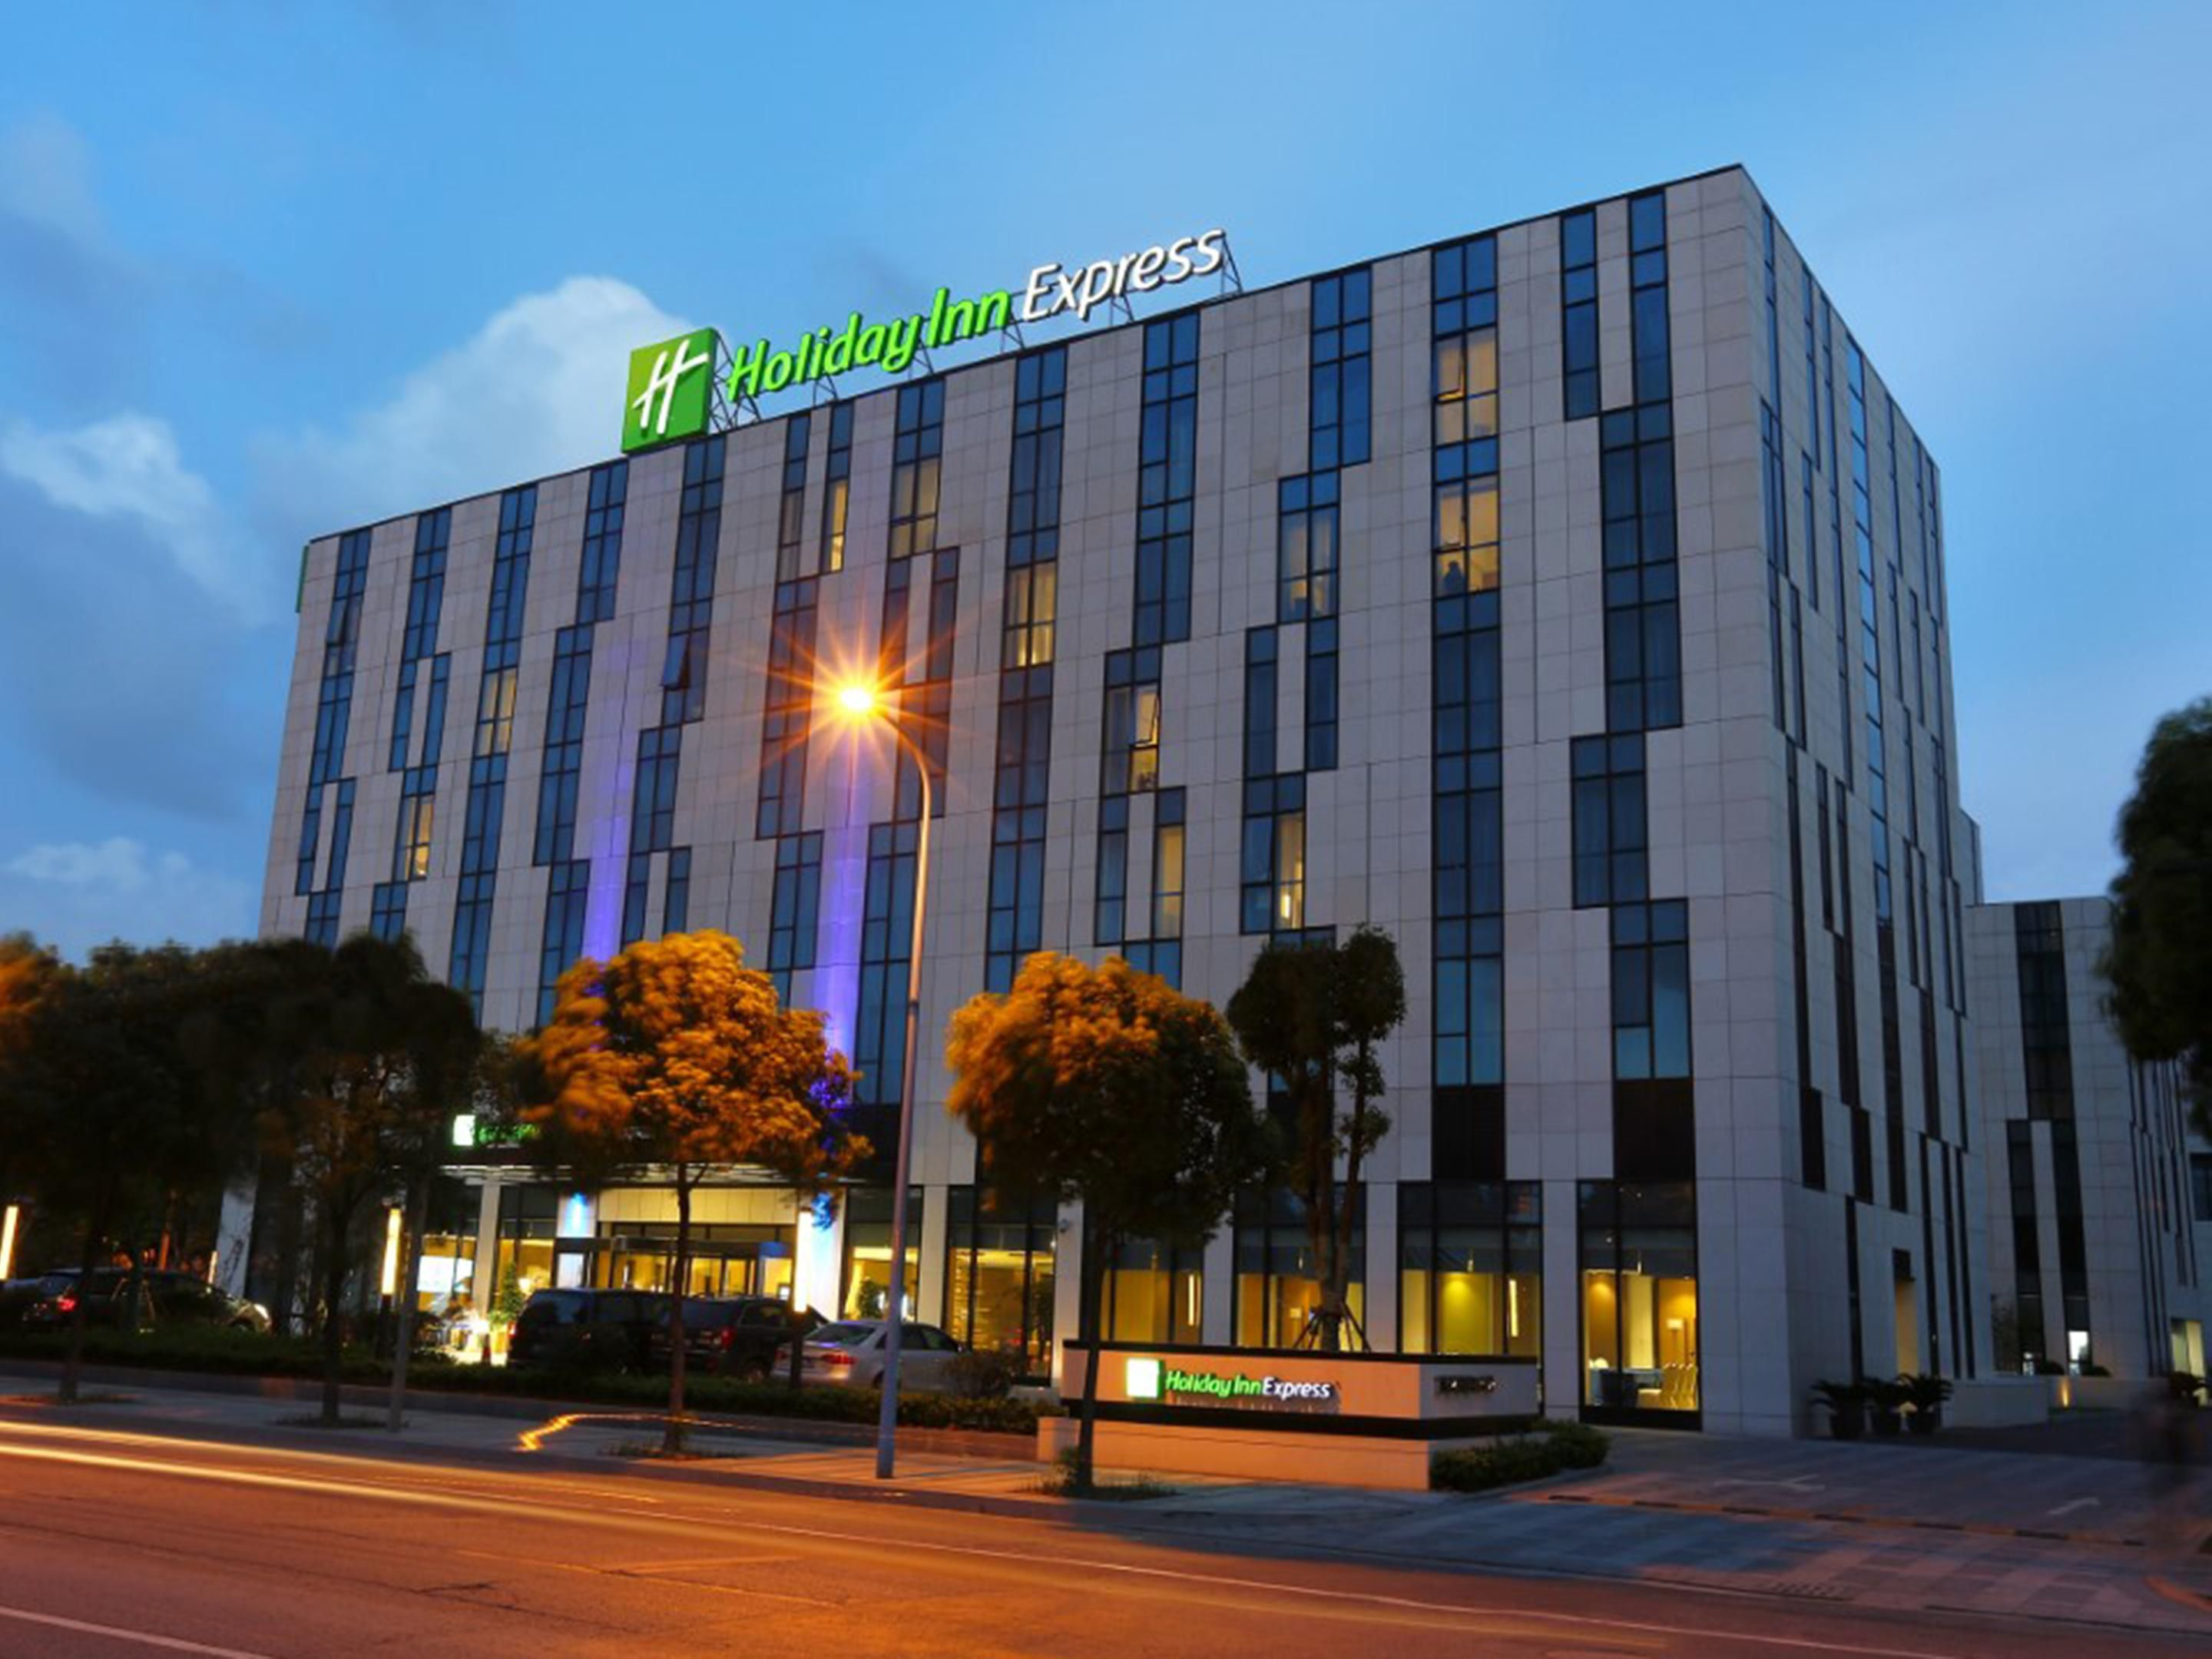 Holiday Inn Express Shanghai Gongkang Appearance night view